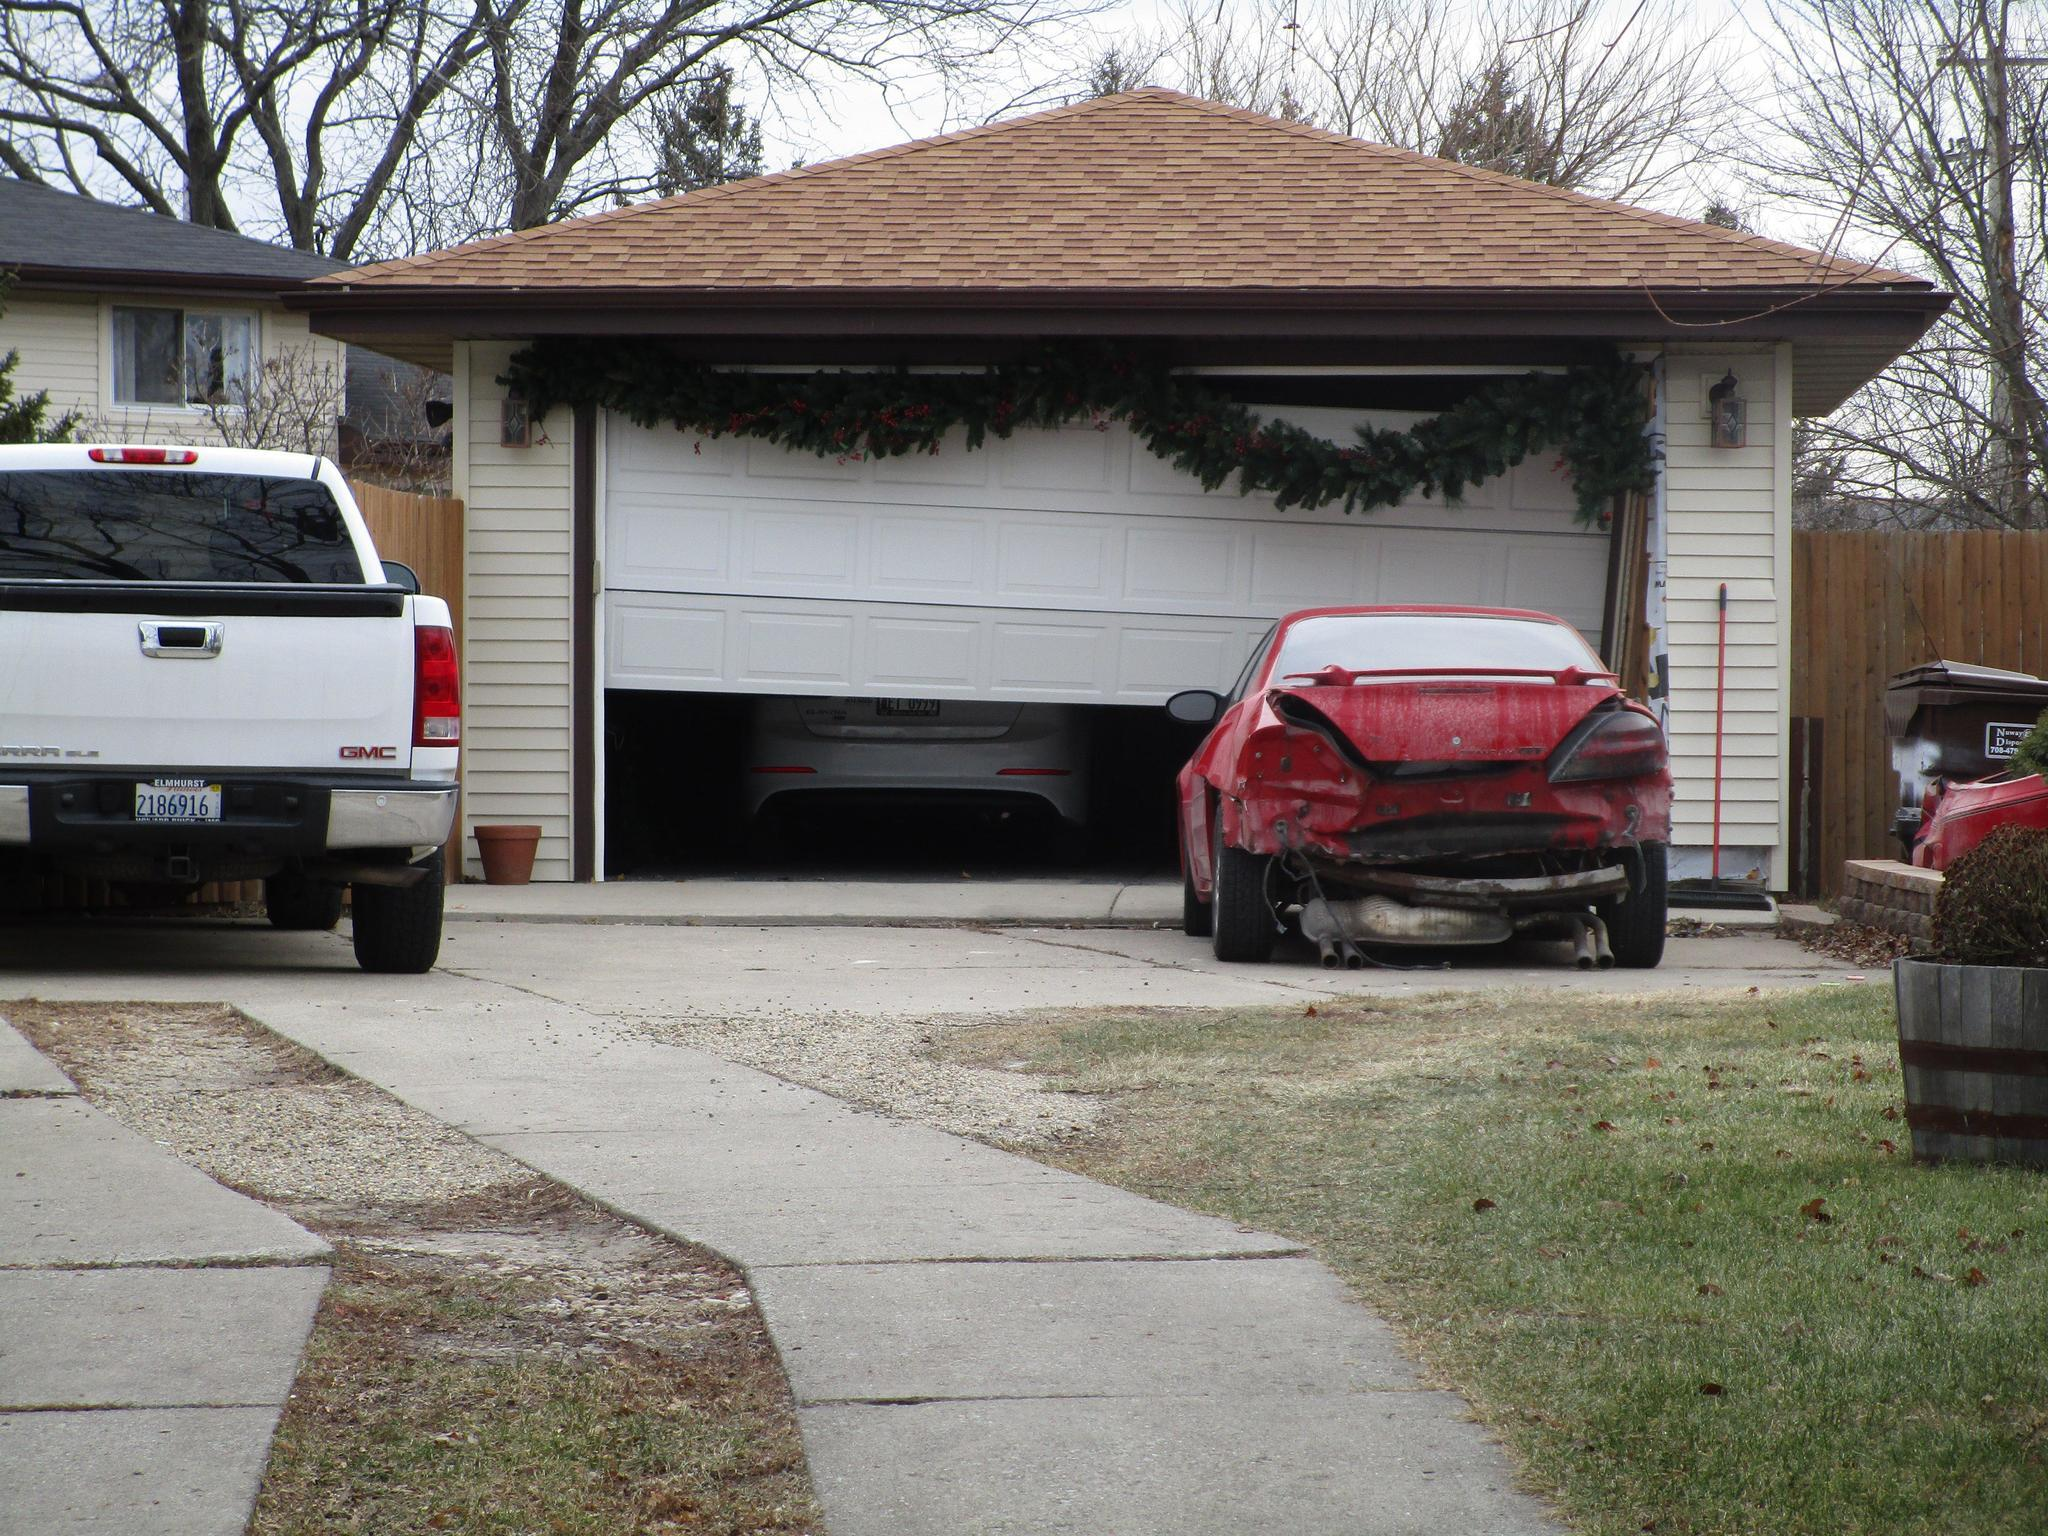 Four Arrested After Vehicle Damages Car Garage In Tinley